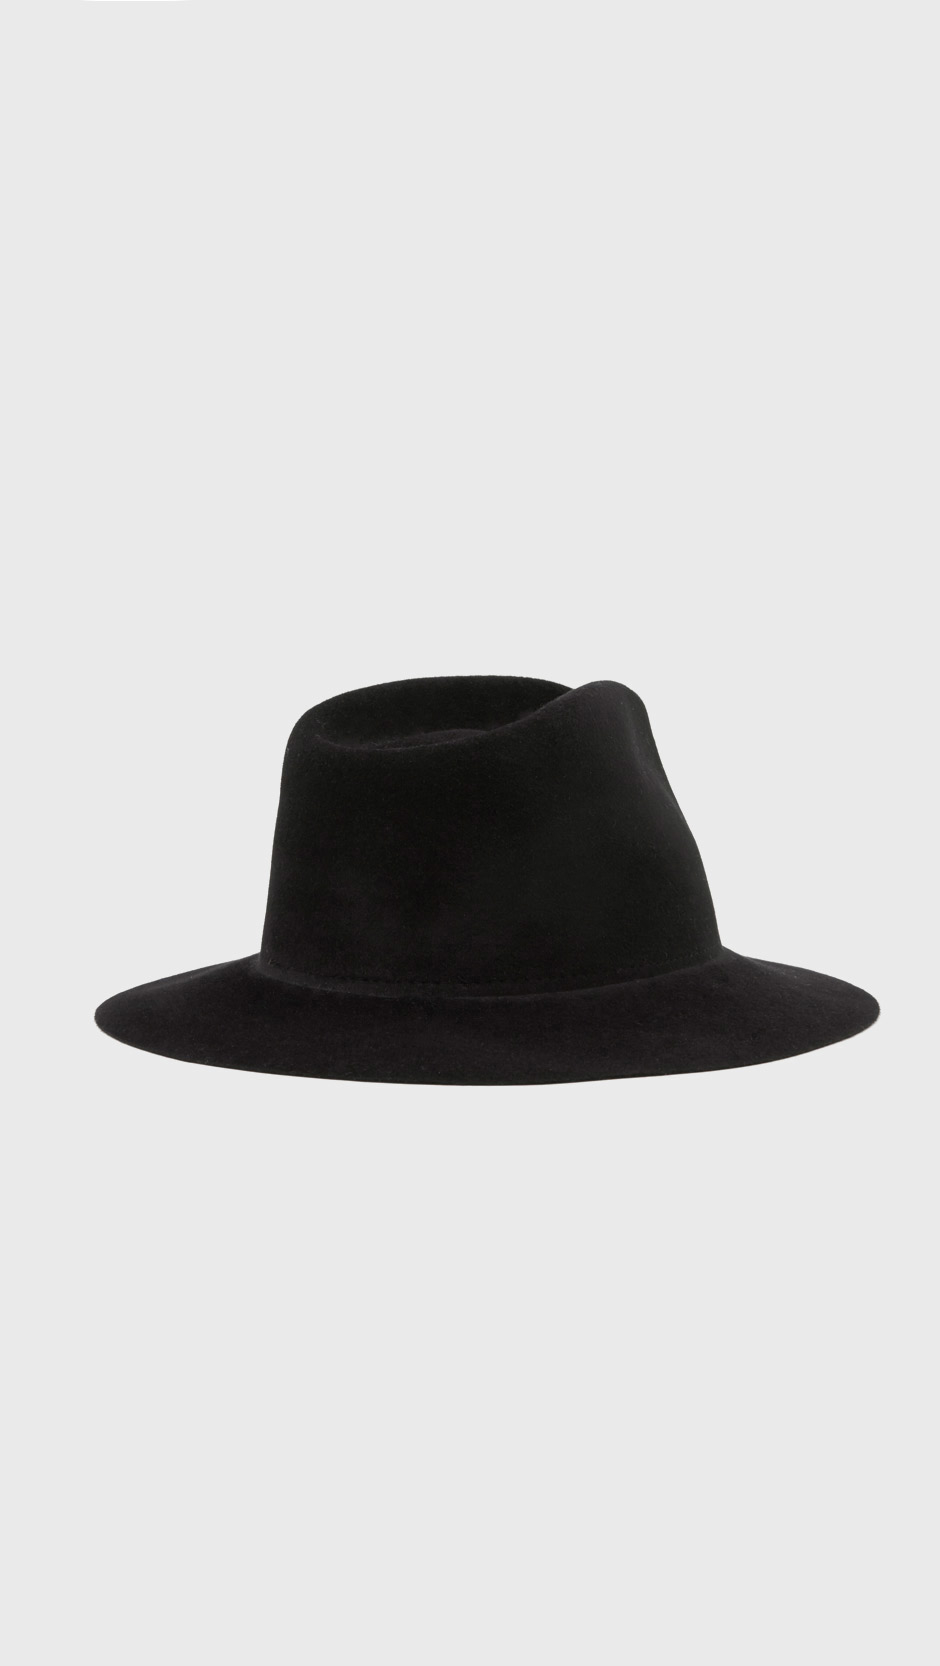 257a59ff87d Lyst - Ryan Roche Bare Angora Hat in Black